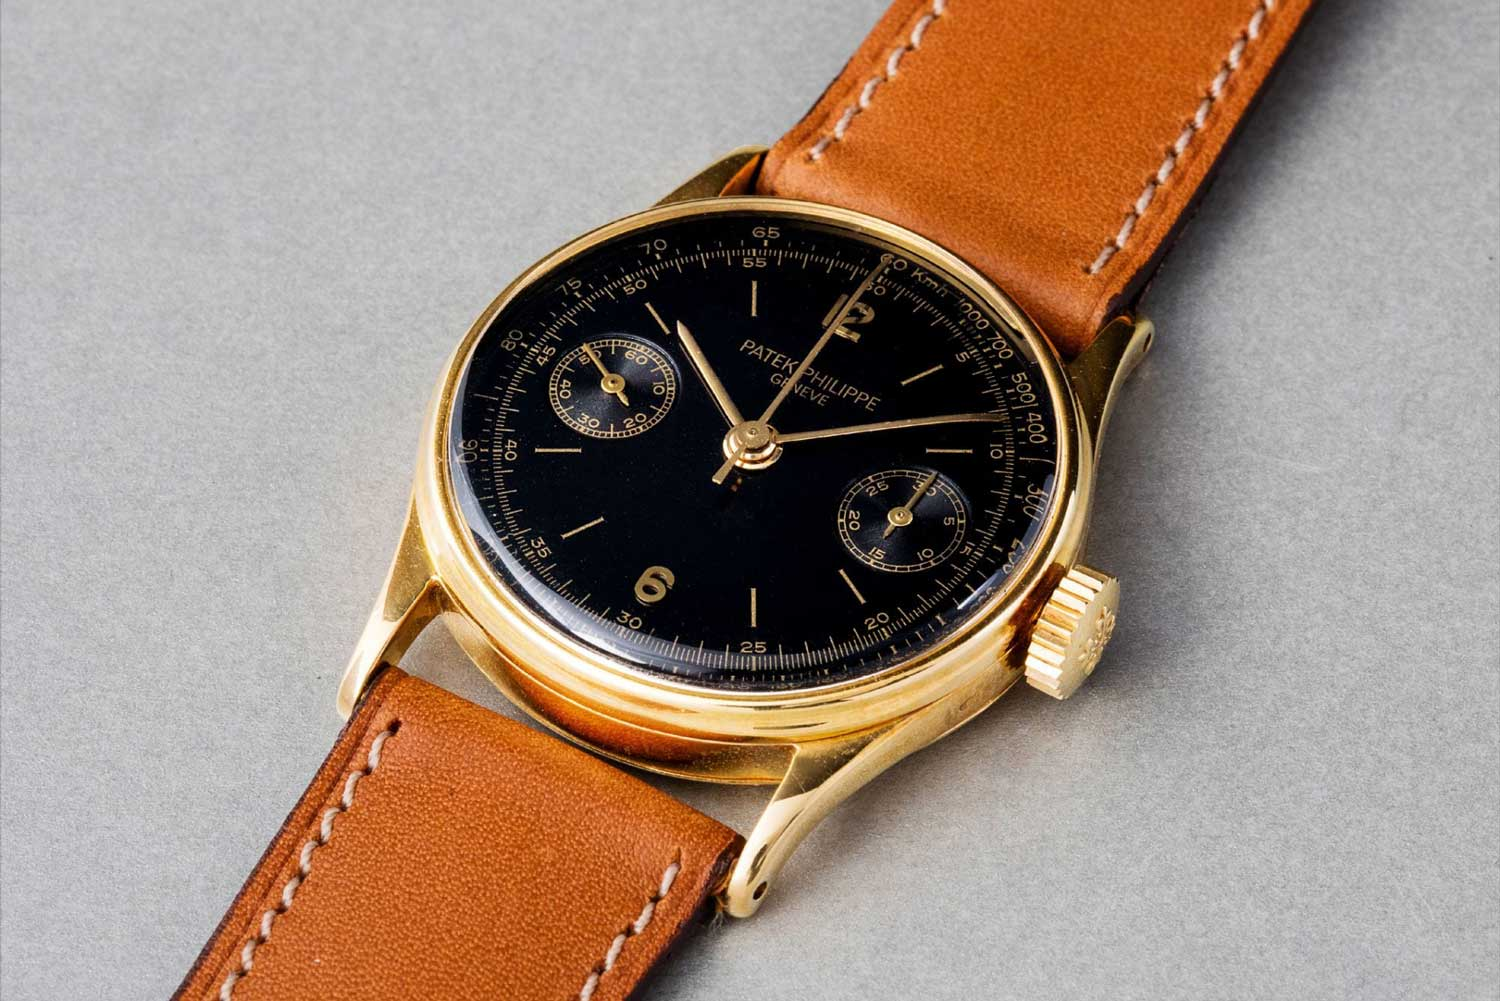 1929 Patek Philippe ref. 130 single-button chronograph wristwatch with black dial and tachometer scale (Image: phillipswatches.com)